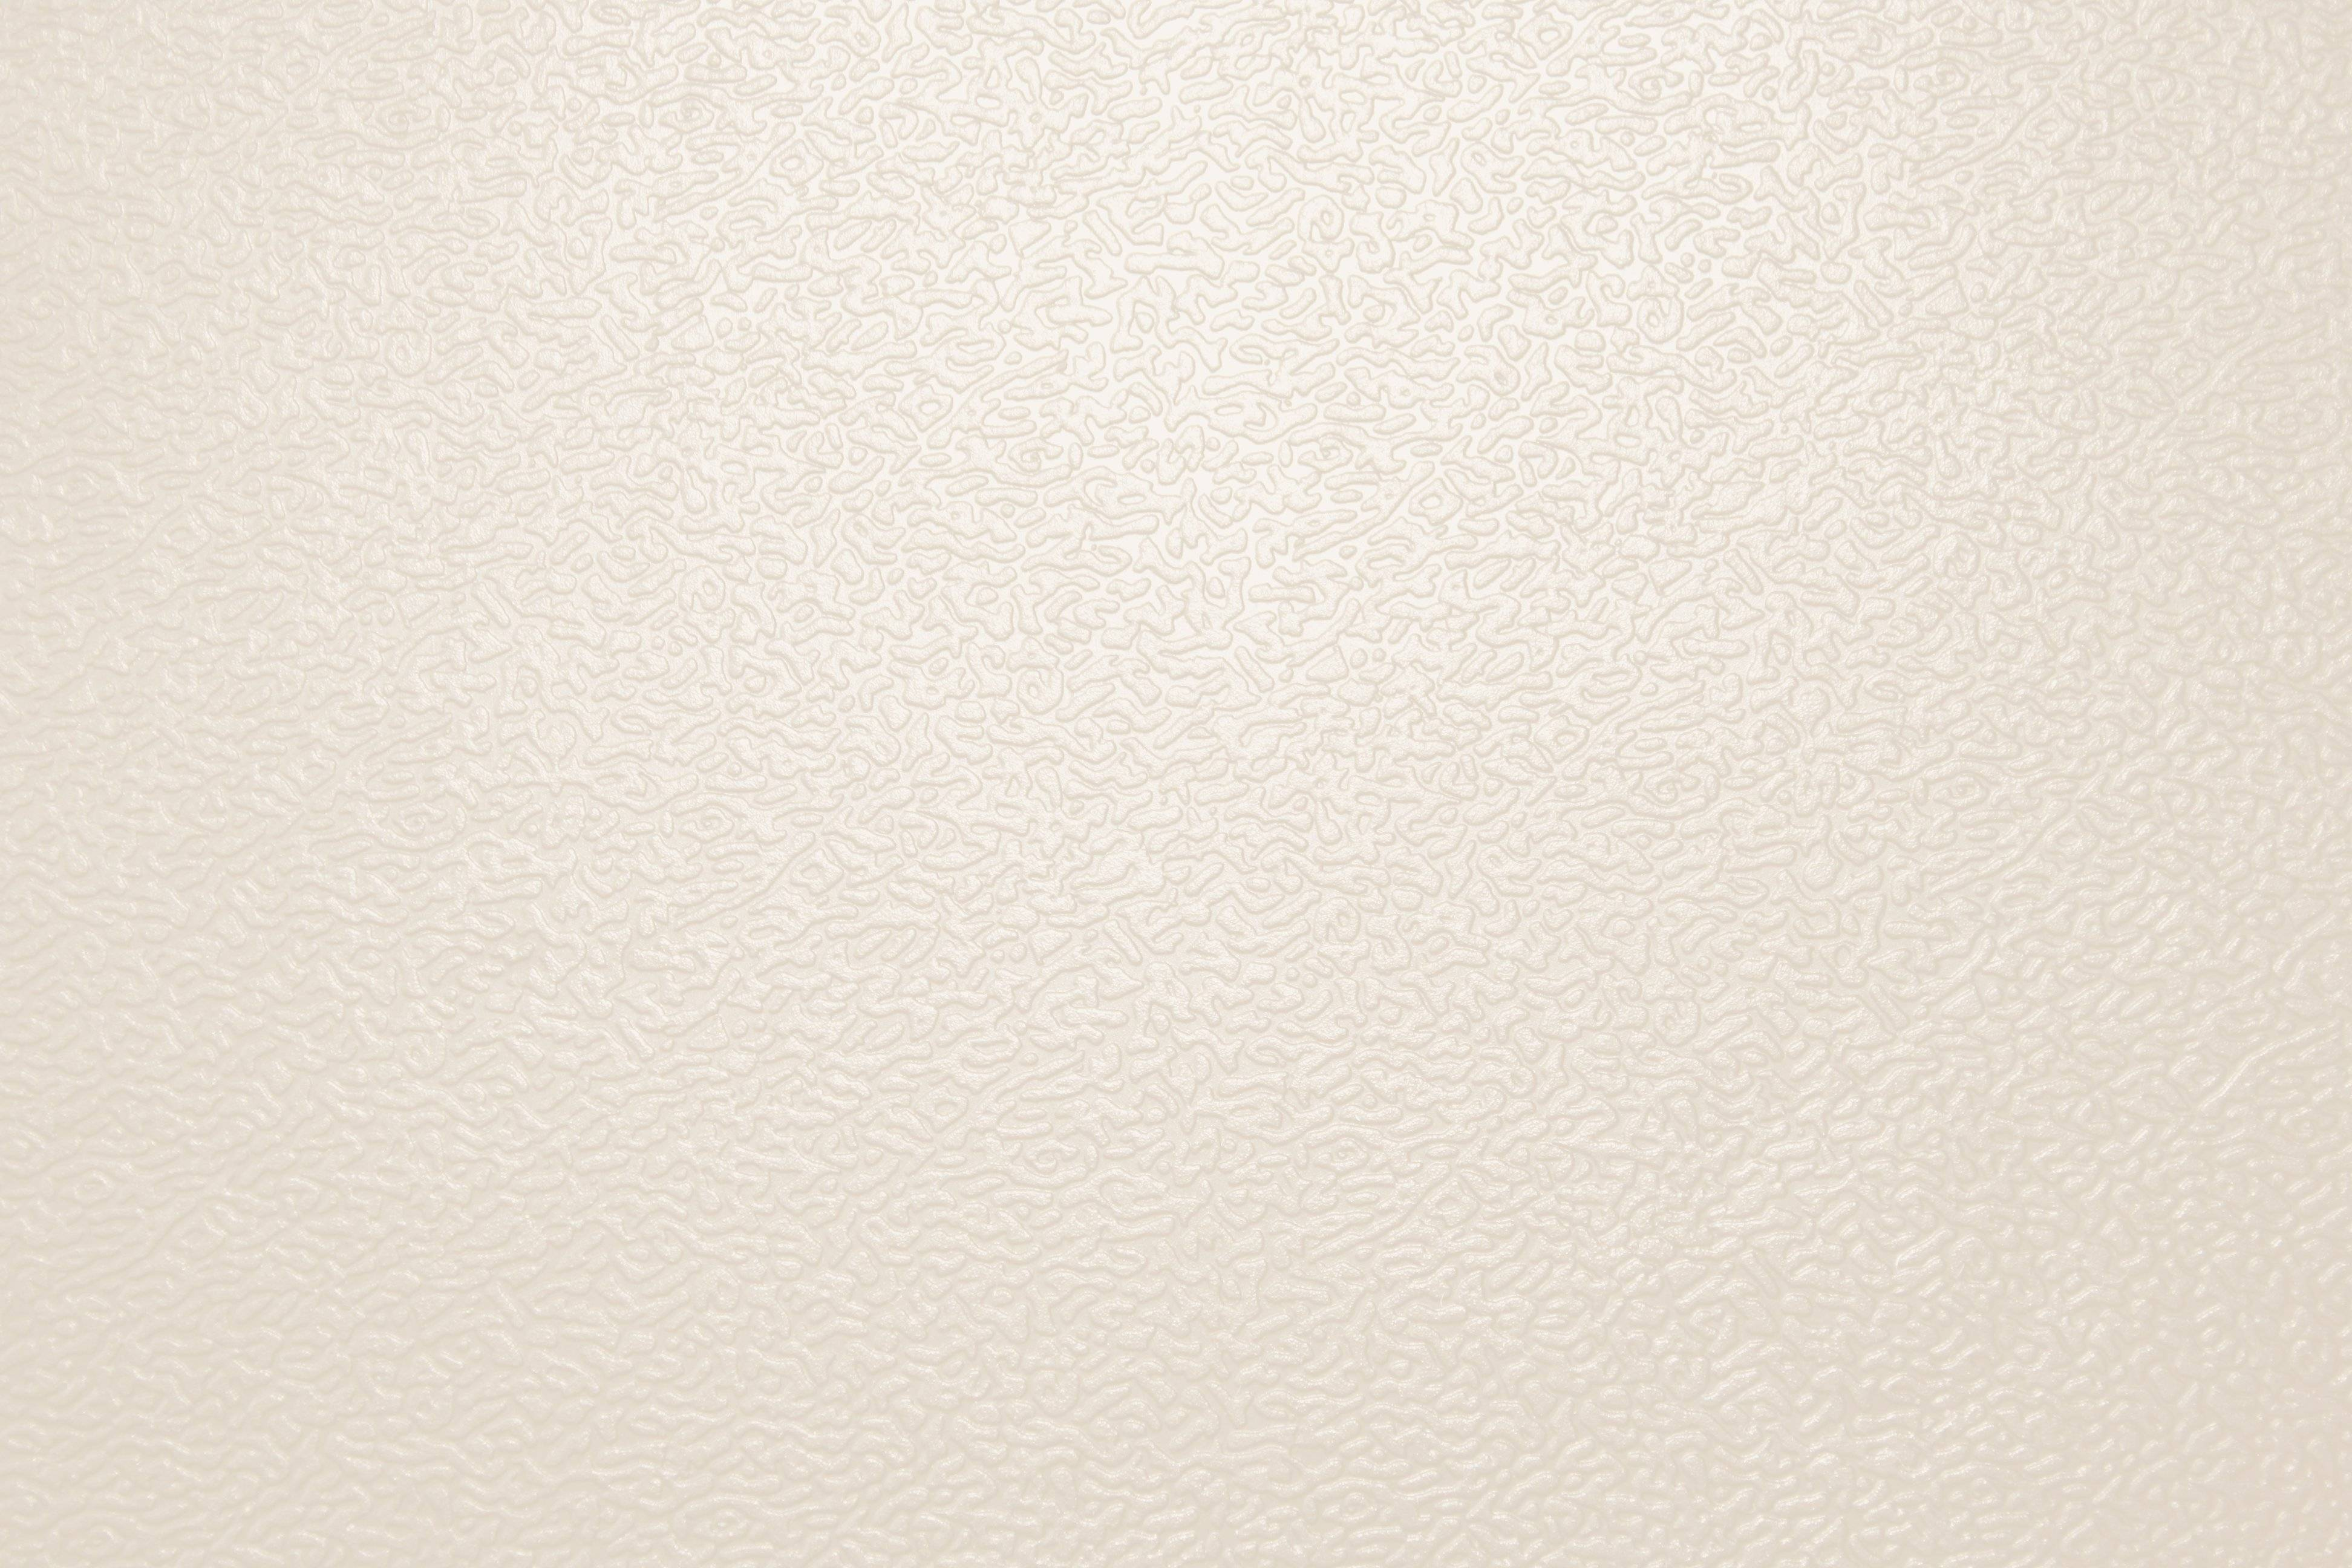 cream colored wallpapers wallpaper cave